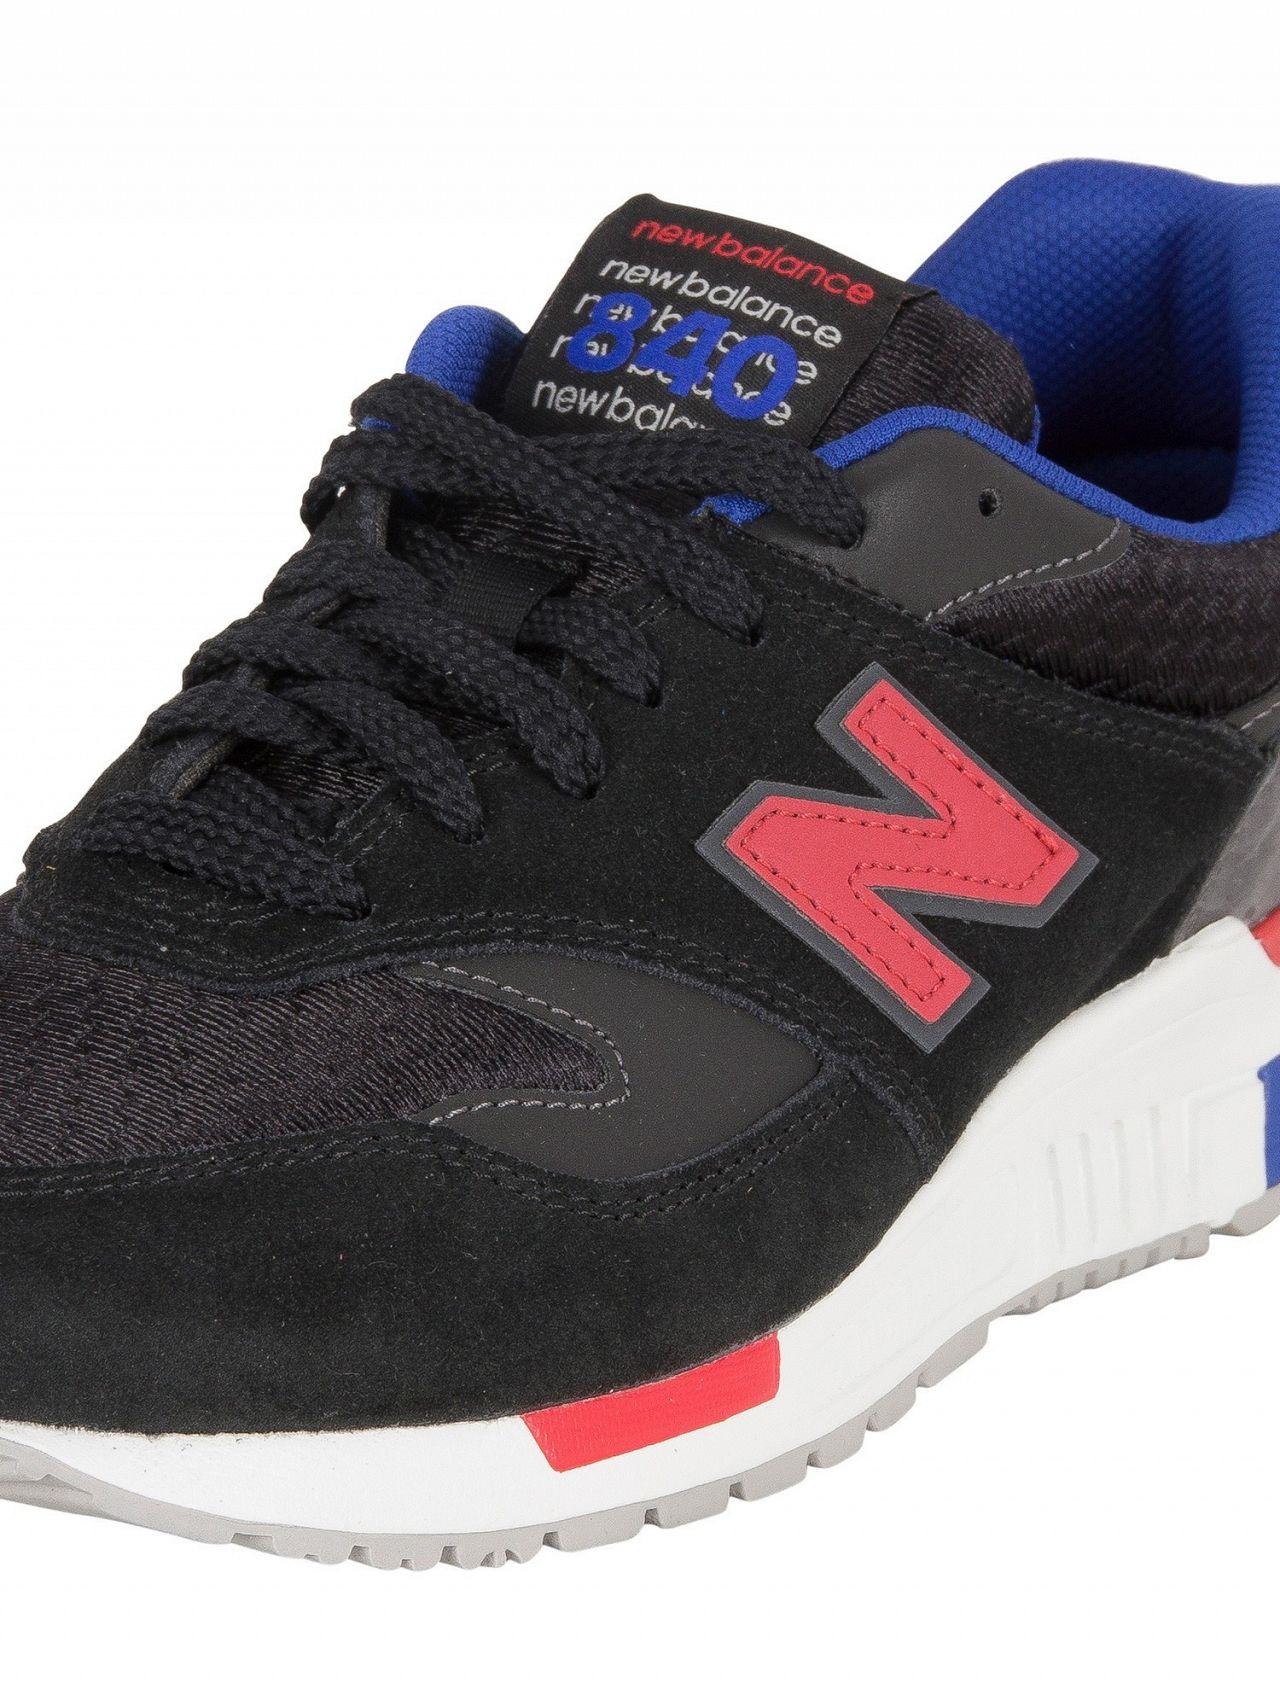 New Balance Black Magnet 840 Suede Trainers   Standout 99b5732f5b25